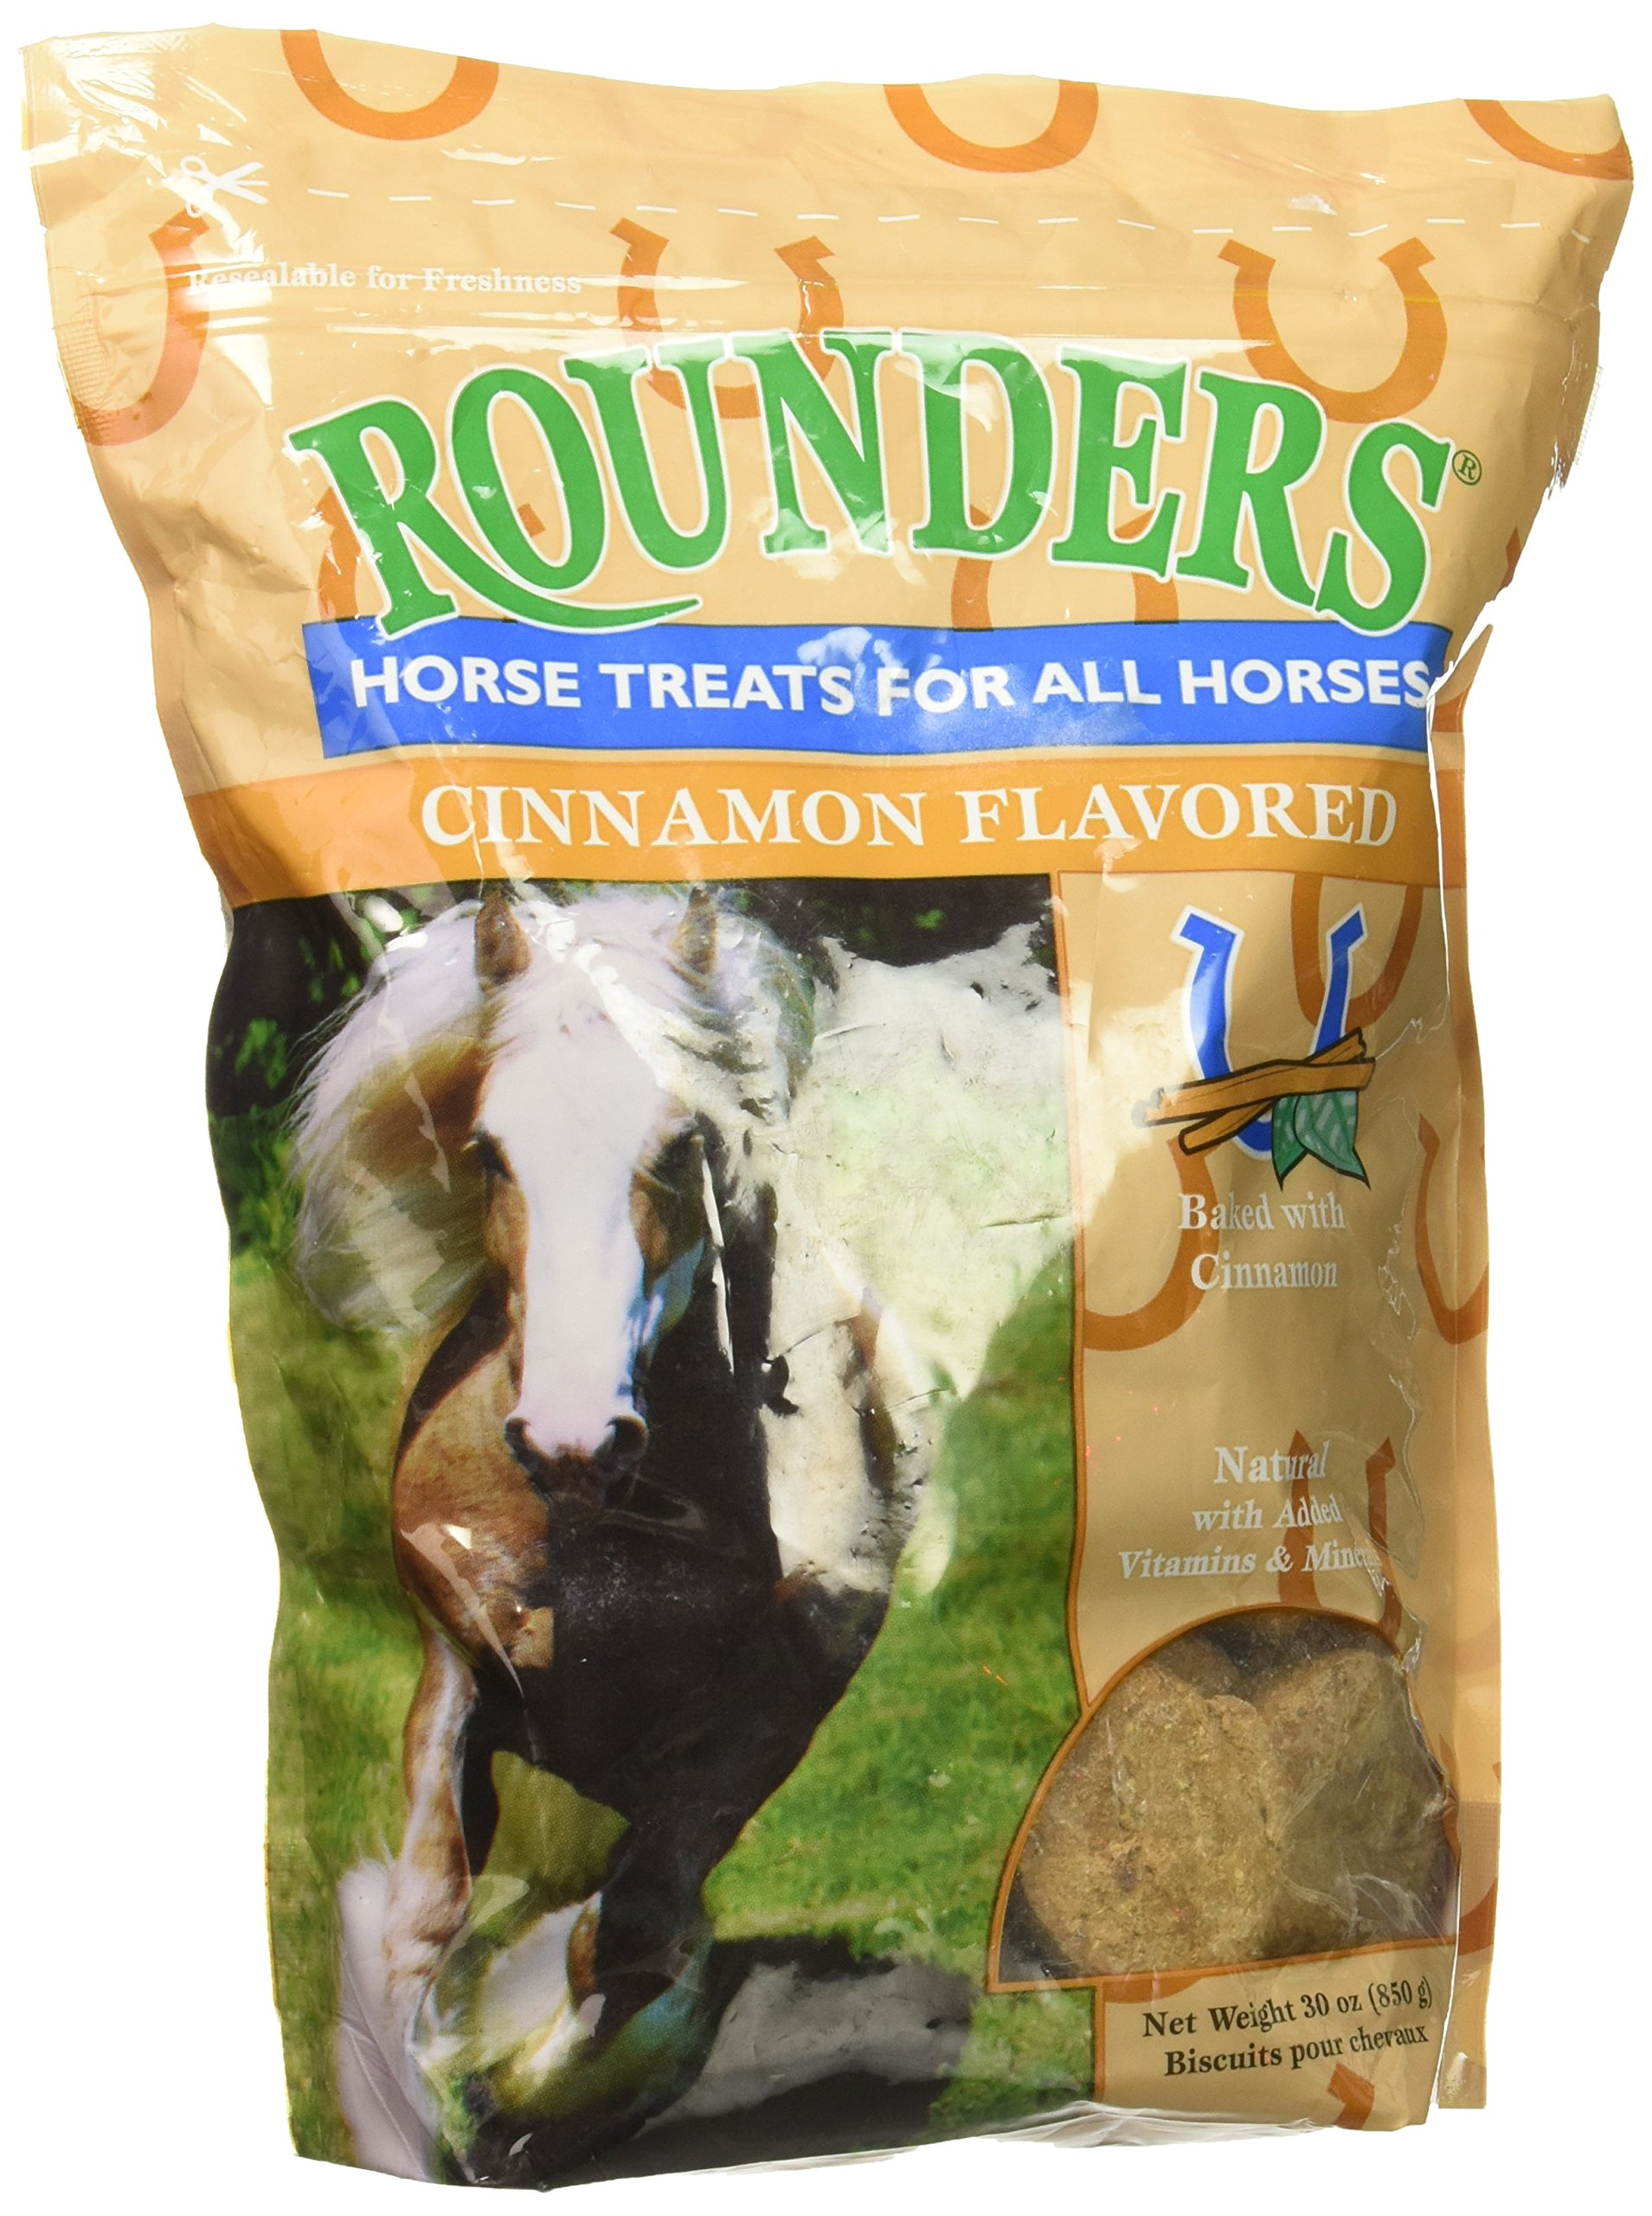 KENT NUTRITION GROUP-BSF 1520 Cinnamon Rounder's Horse Treat, 30 oz